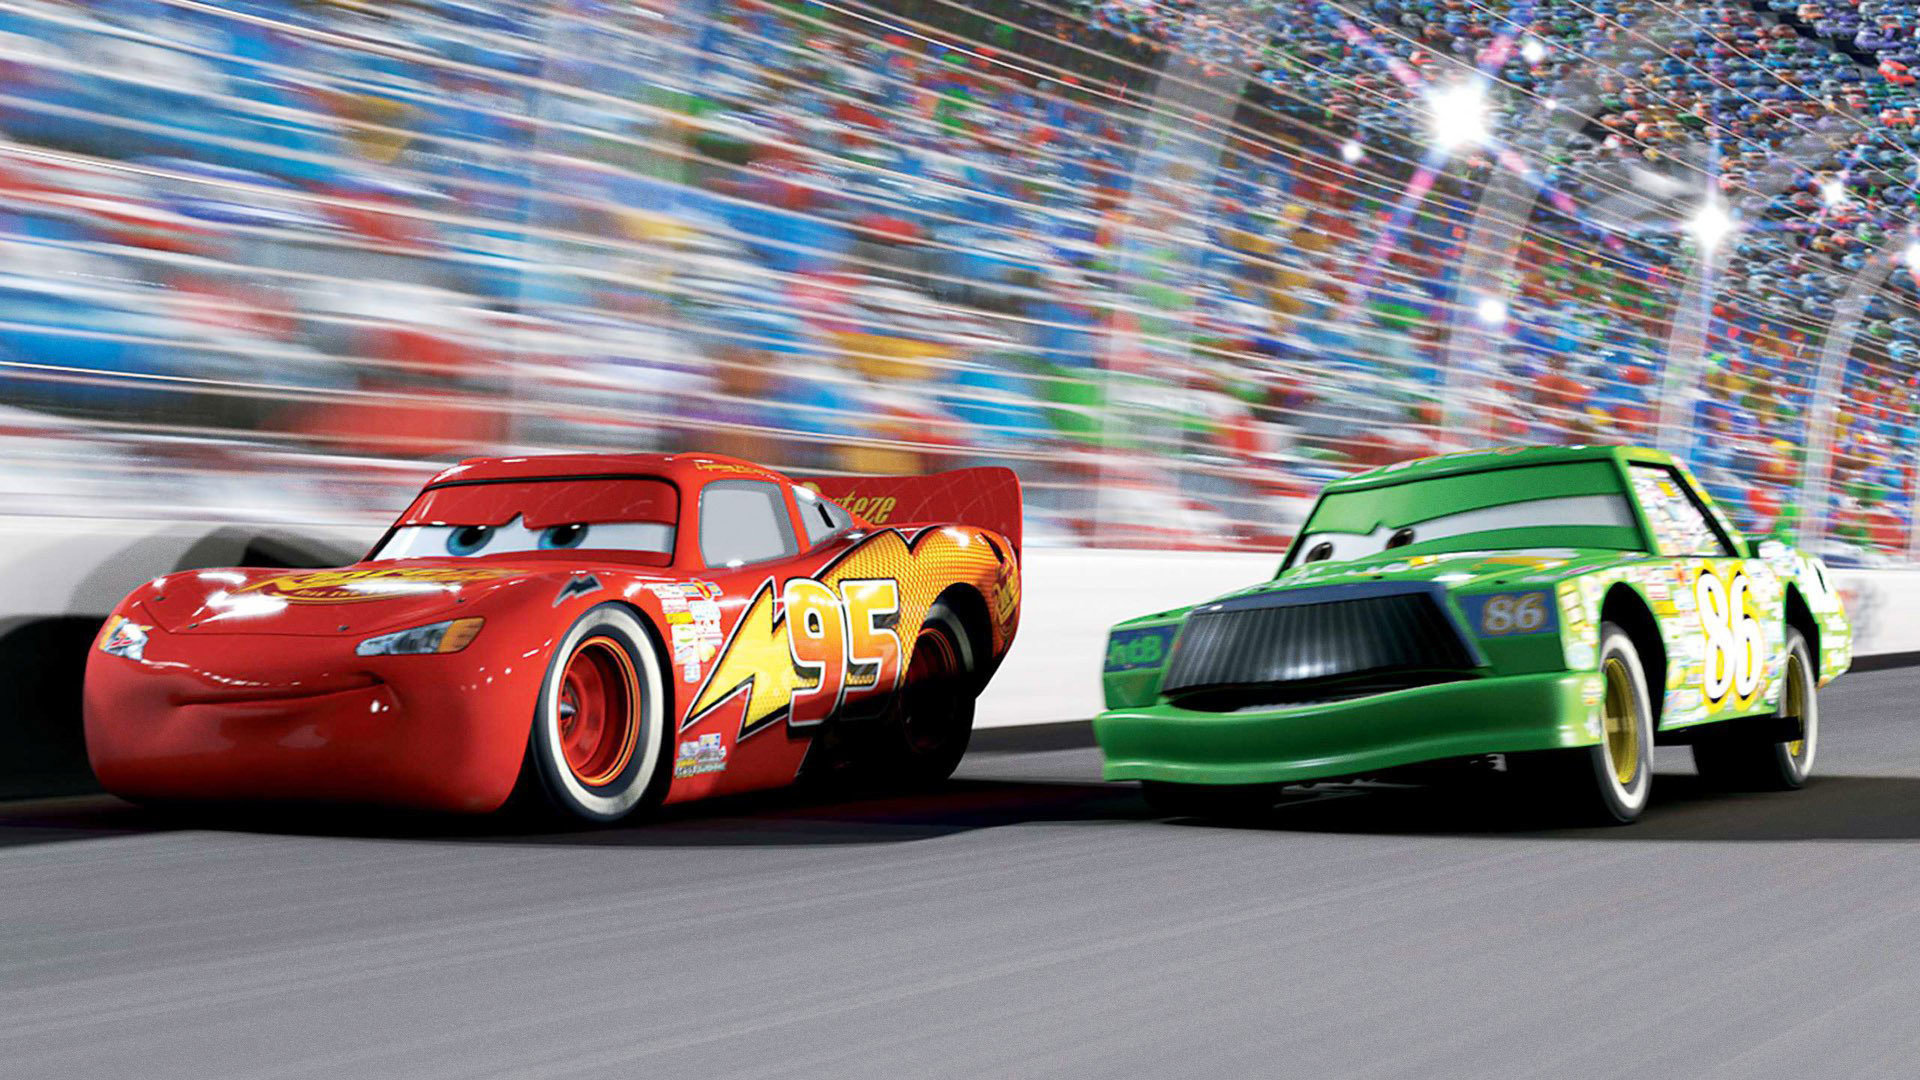 Download Hd 1920x1080 Cars Movie Desktop Wallpaper Id 99479 For Free